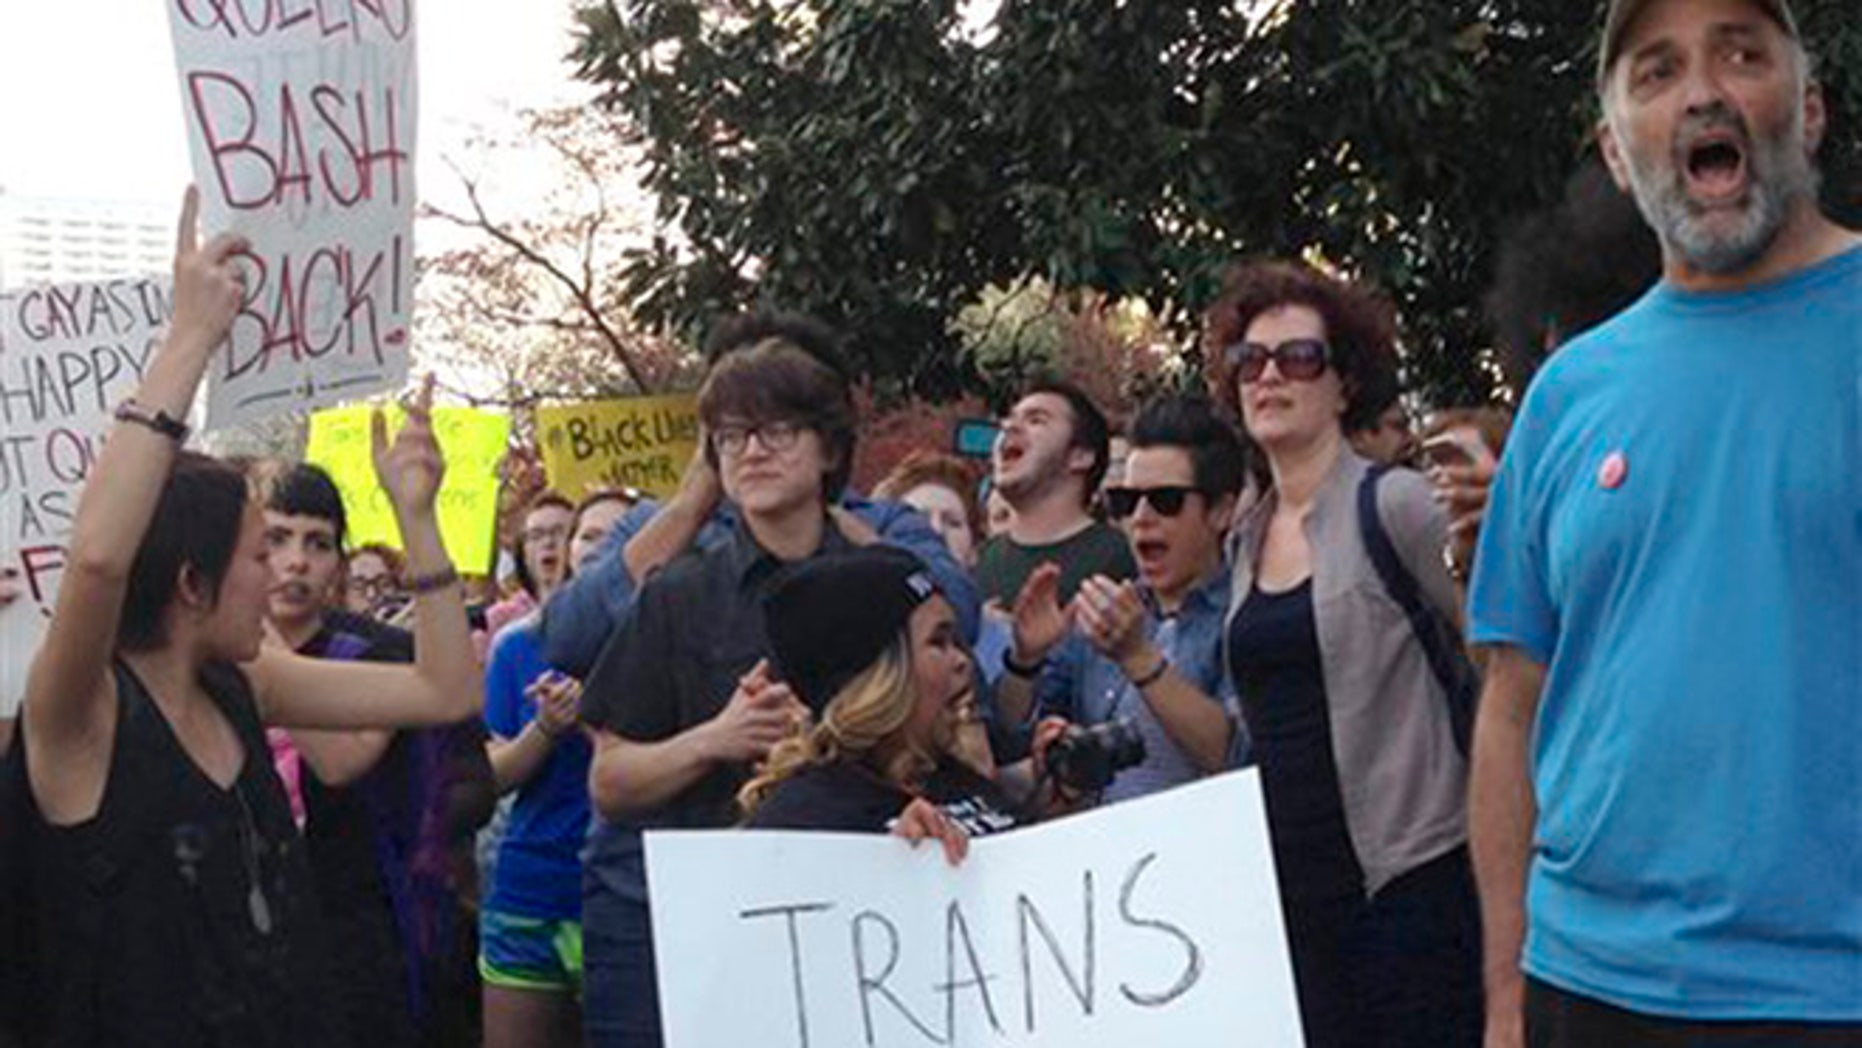 People protest outside the North Carolina Executive Mansion in Raleigh, N.C., Thursday, March 24, 2016. North Carolina legislators decided to rein in local governments by approving a bill Wednesday that prevents cities and counties from passing their own anti-discrimination rules. North Carolina Gov. Pat McCrory later signed the legislation, which dealt a blow to the LGBT movement after success with protections in cities across the country. (AP Photo/Emery P. Dalesio)